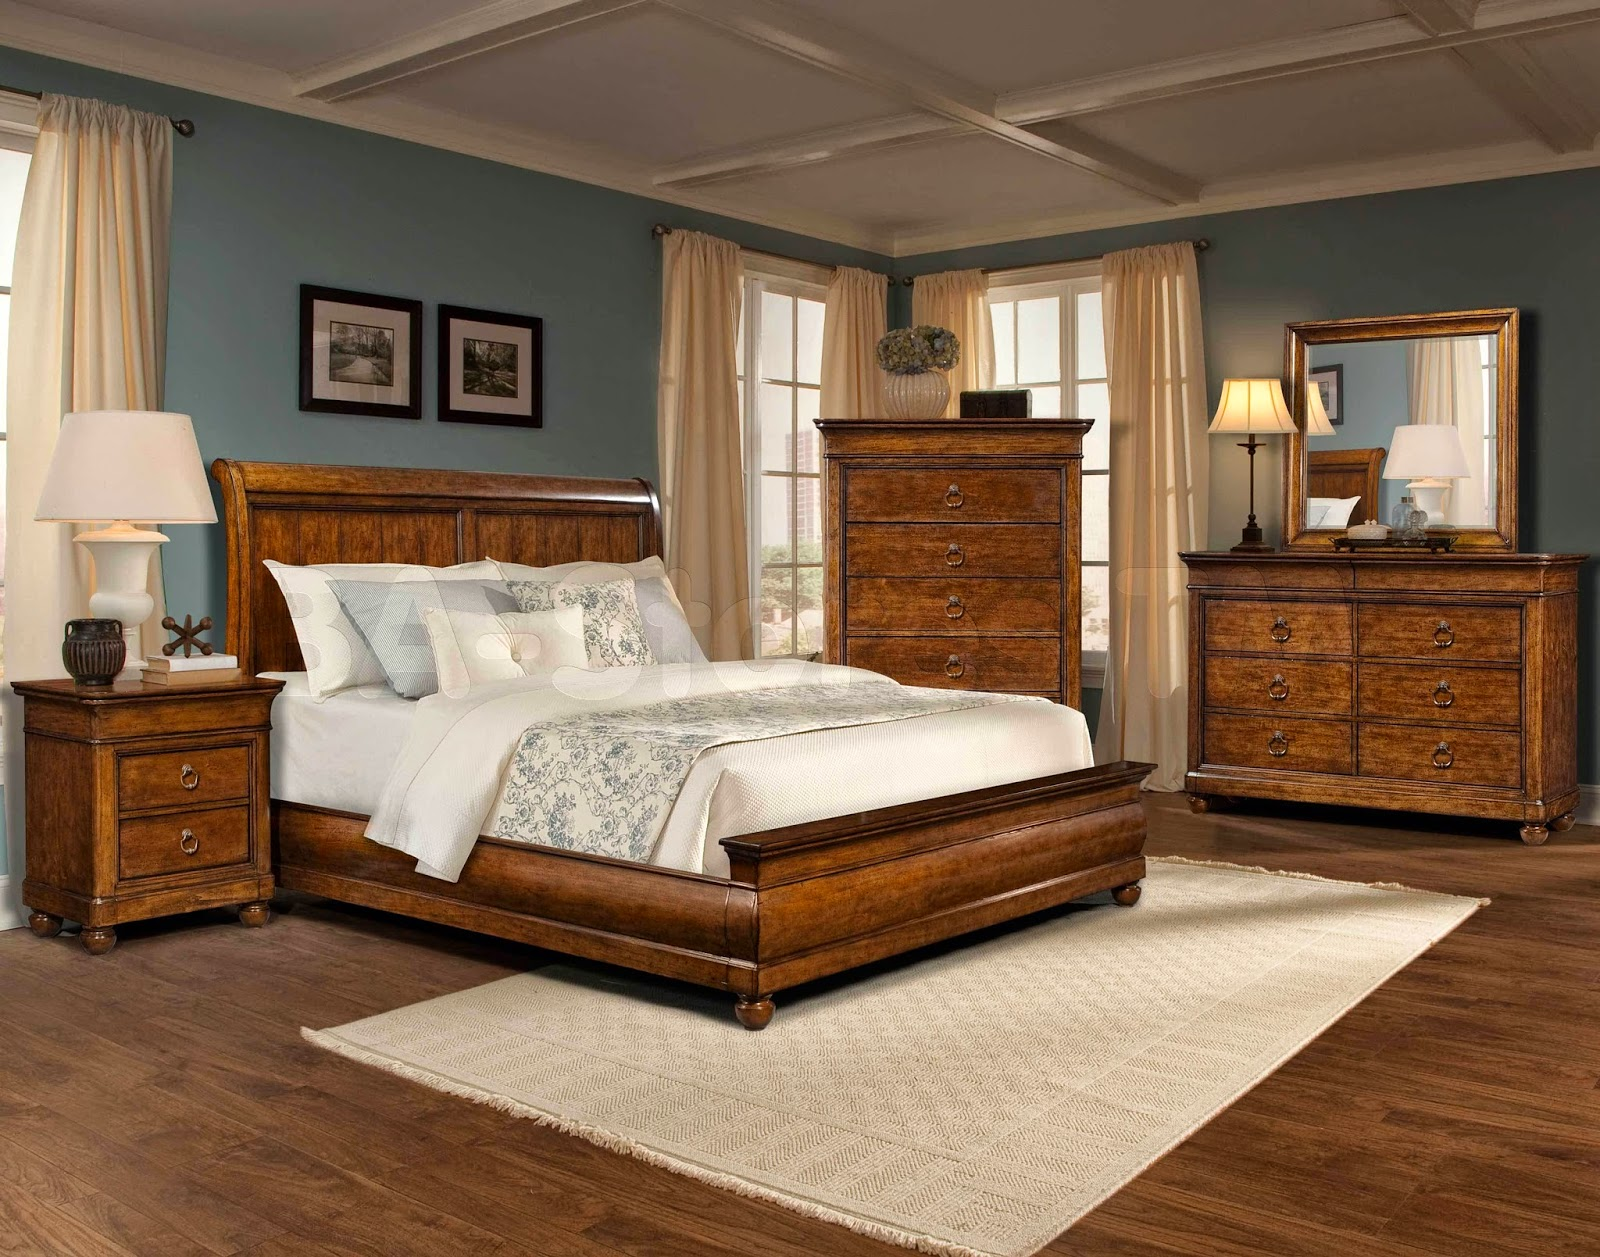 Master Bedroom Decorating Ideas with Bedroom Furniture Choices | MODERN INTERIOR